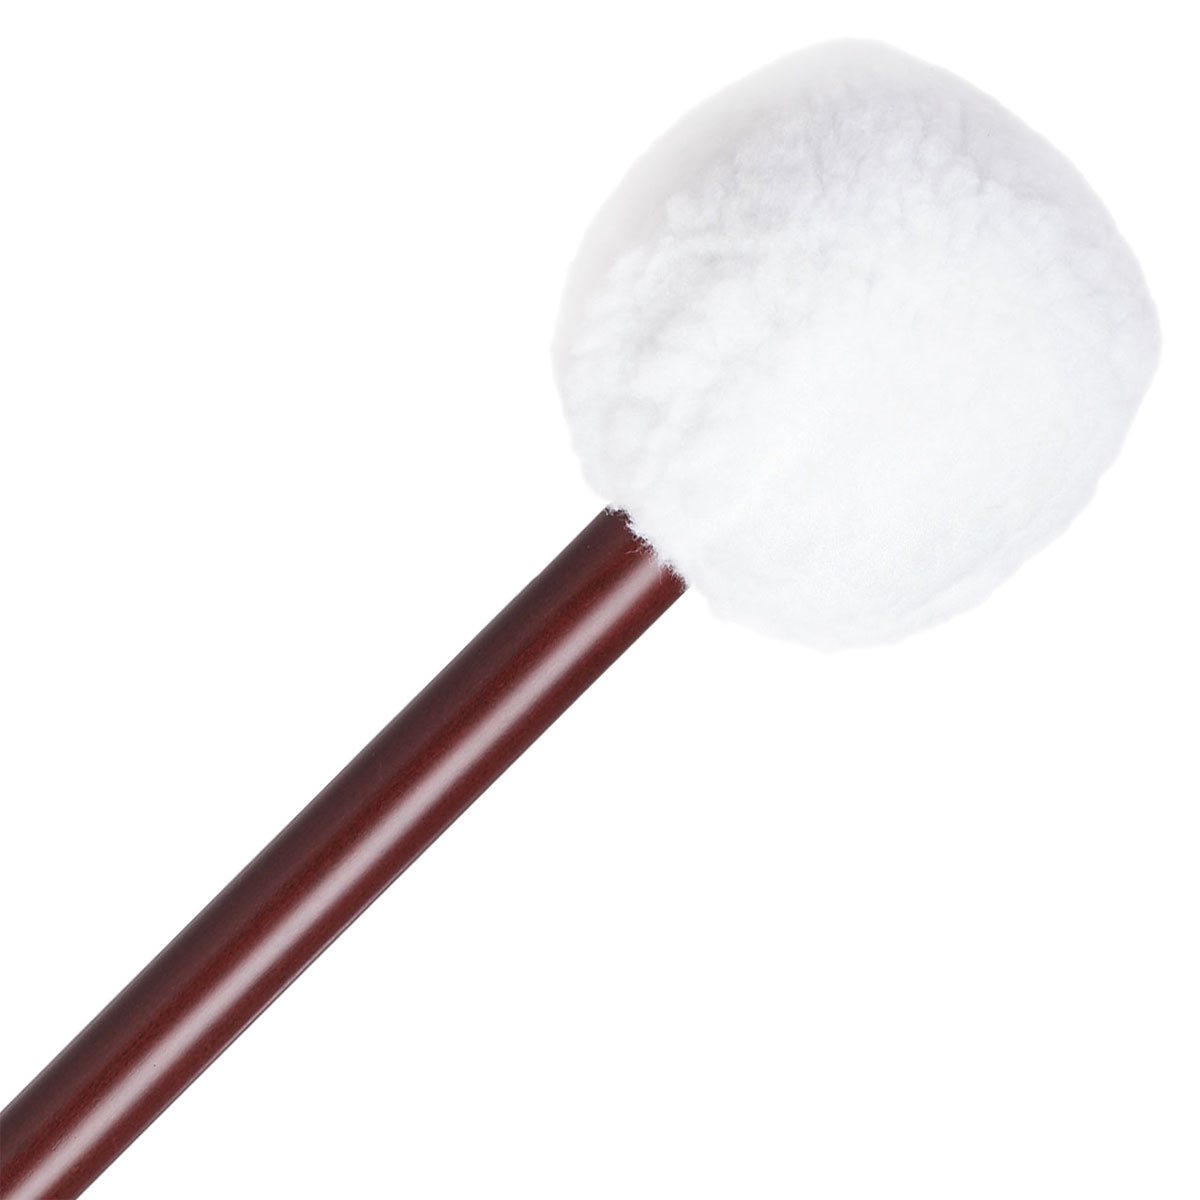 Vic Firth Soundpower Large Gong Mallet